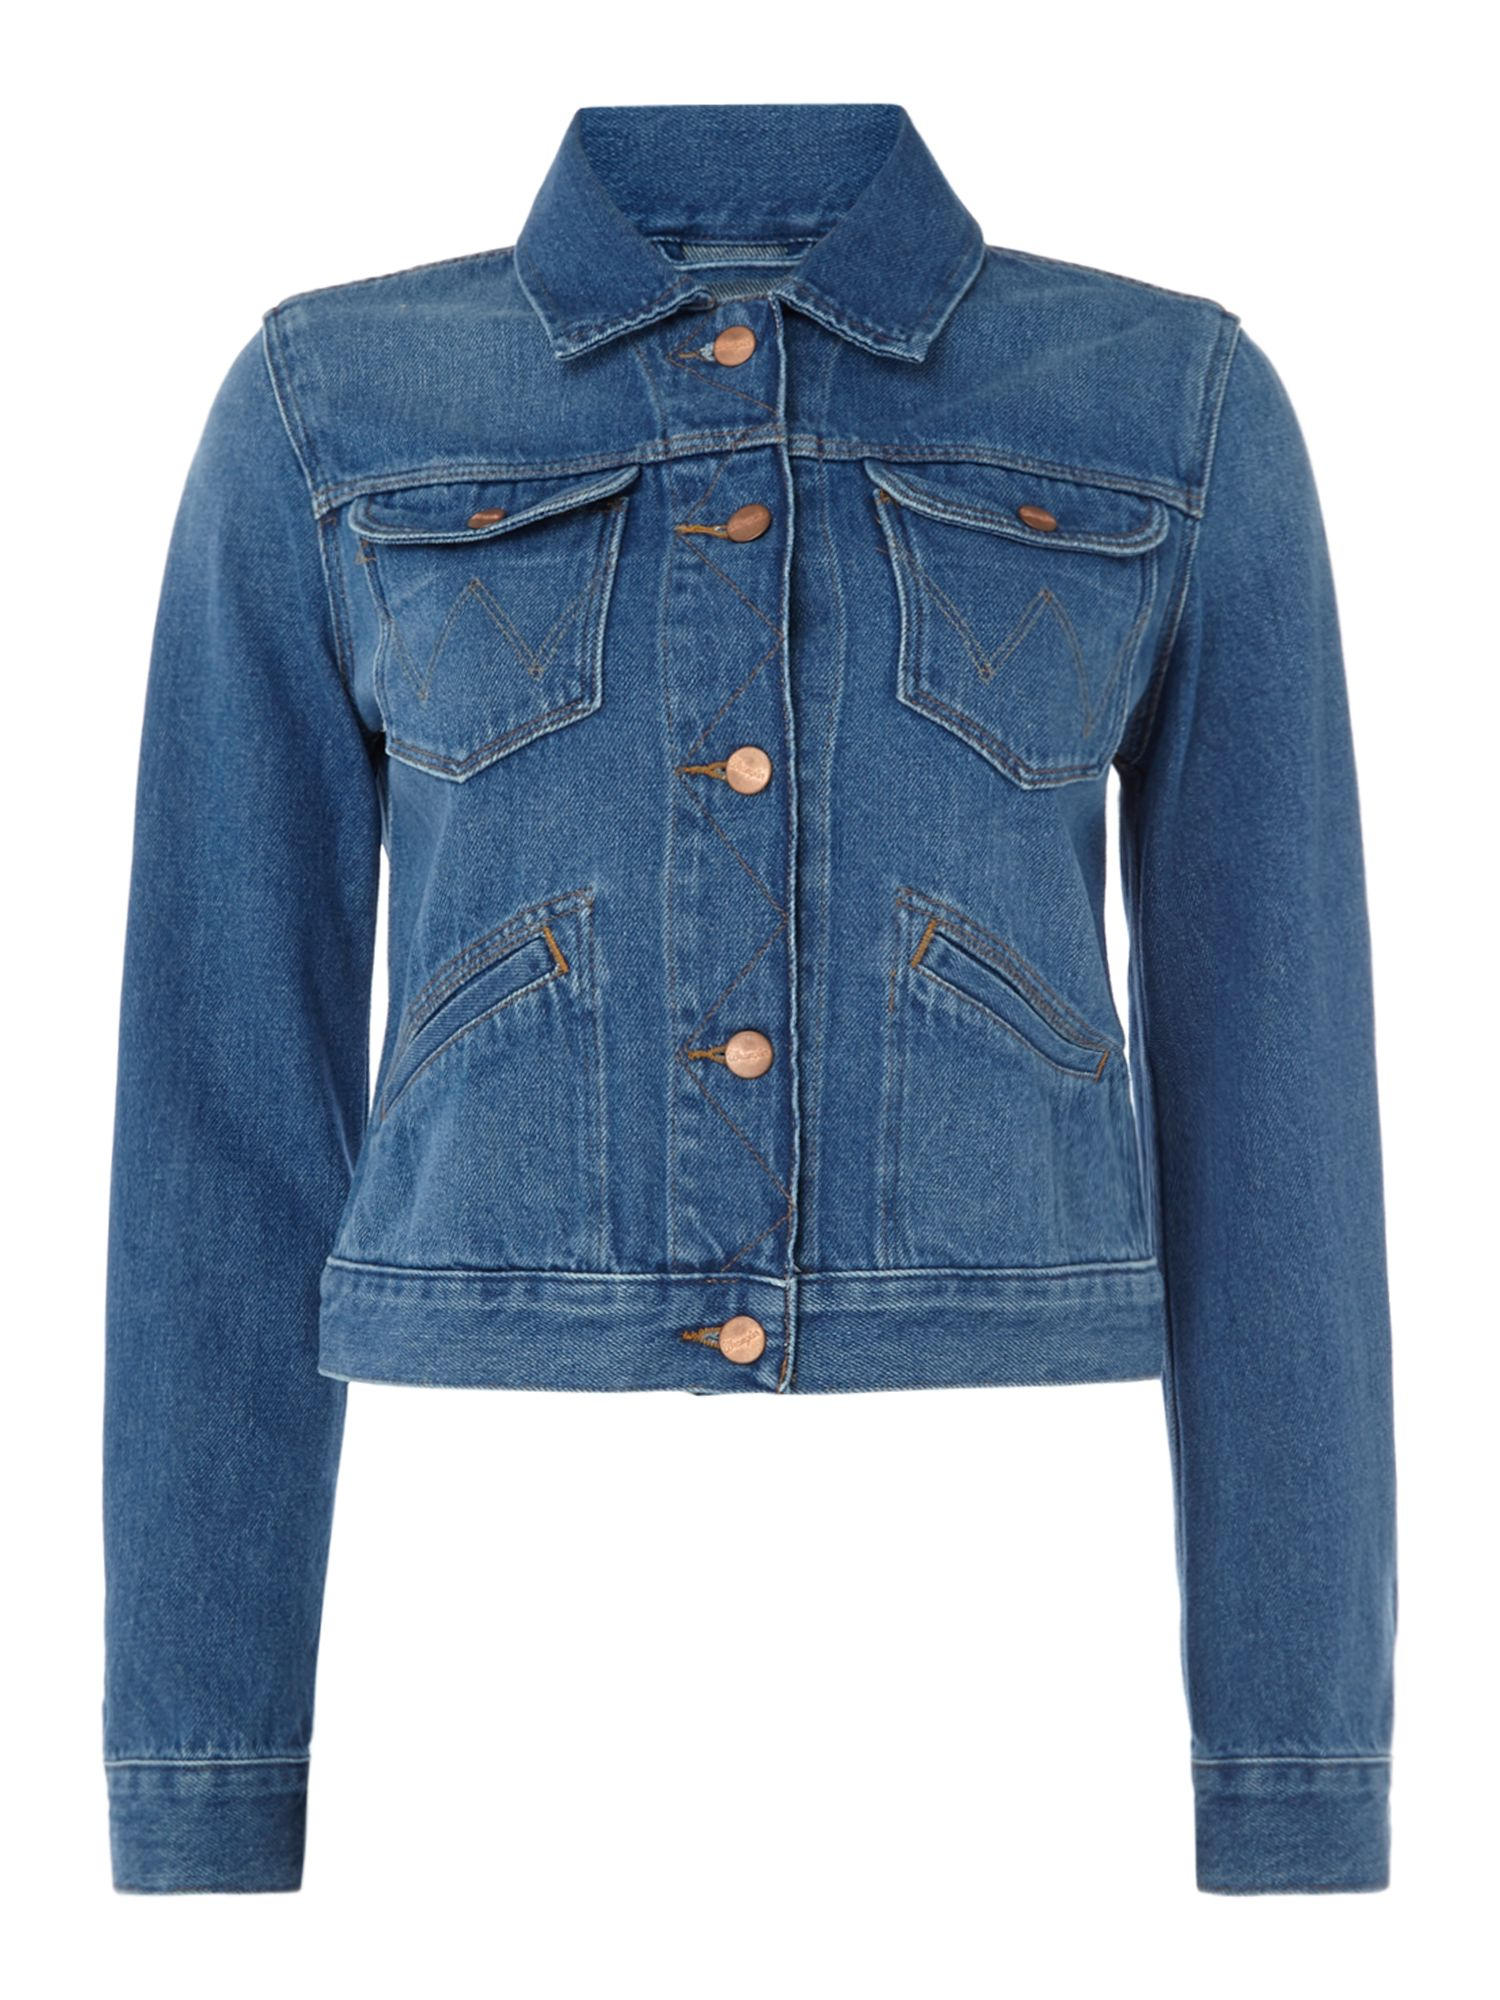 Wrangler Long Sleeve Cropped Denim Jacket in Retro Vibes, Denim Mid Wash